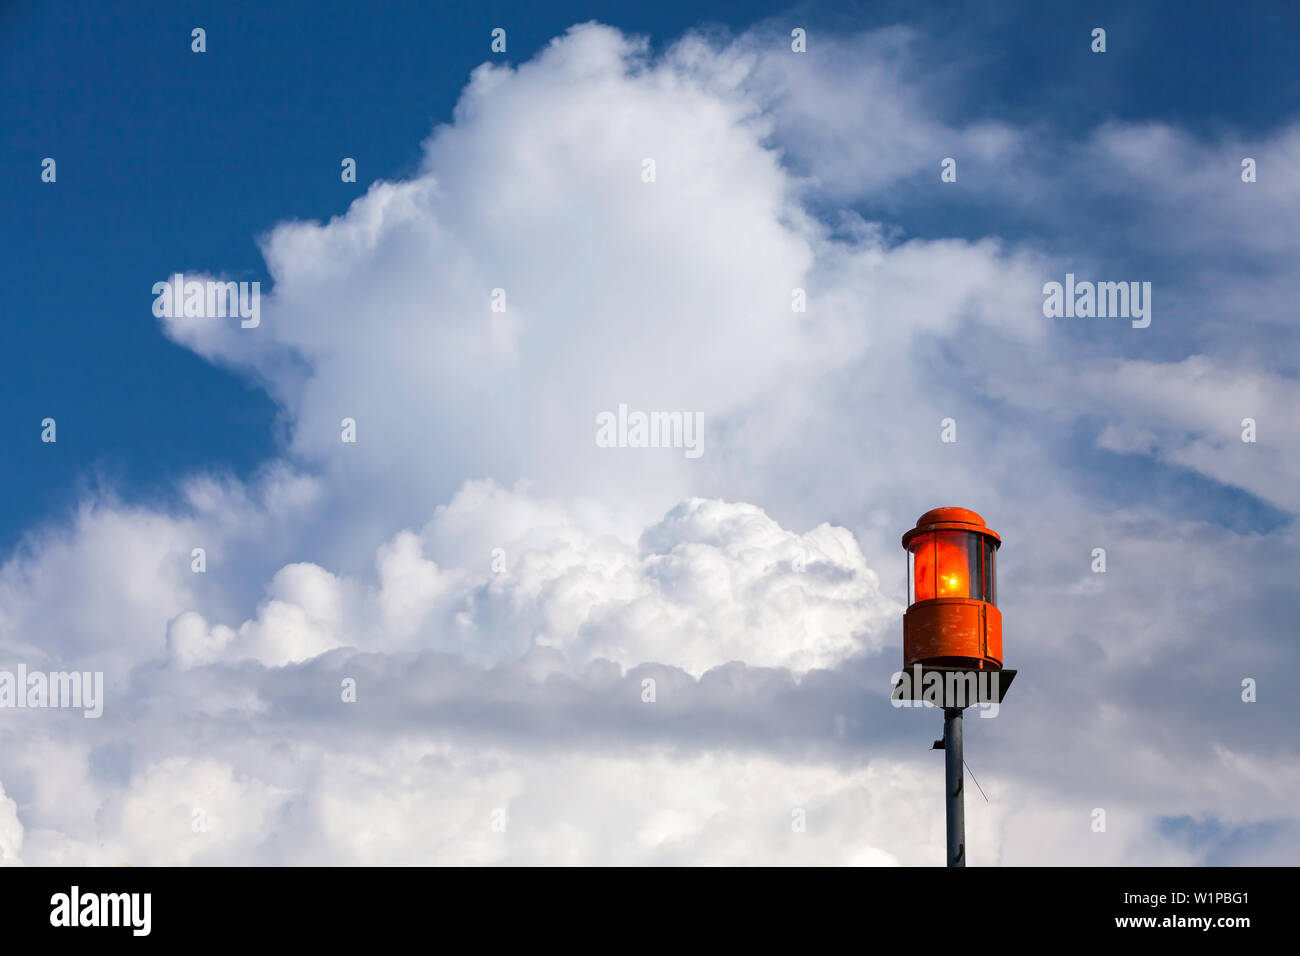 Storm warning light on the Chiemsee in Prien, behind white clouds in the blue sky Stock Photo